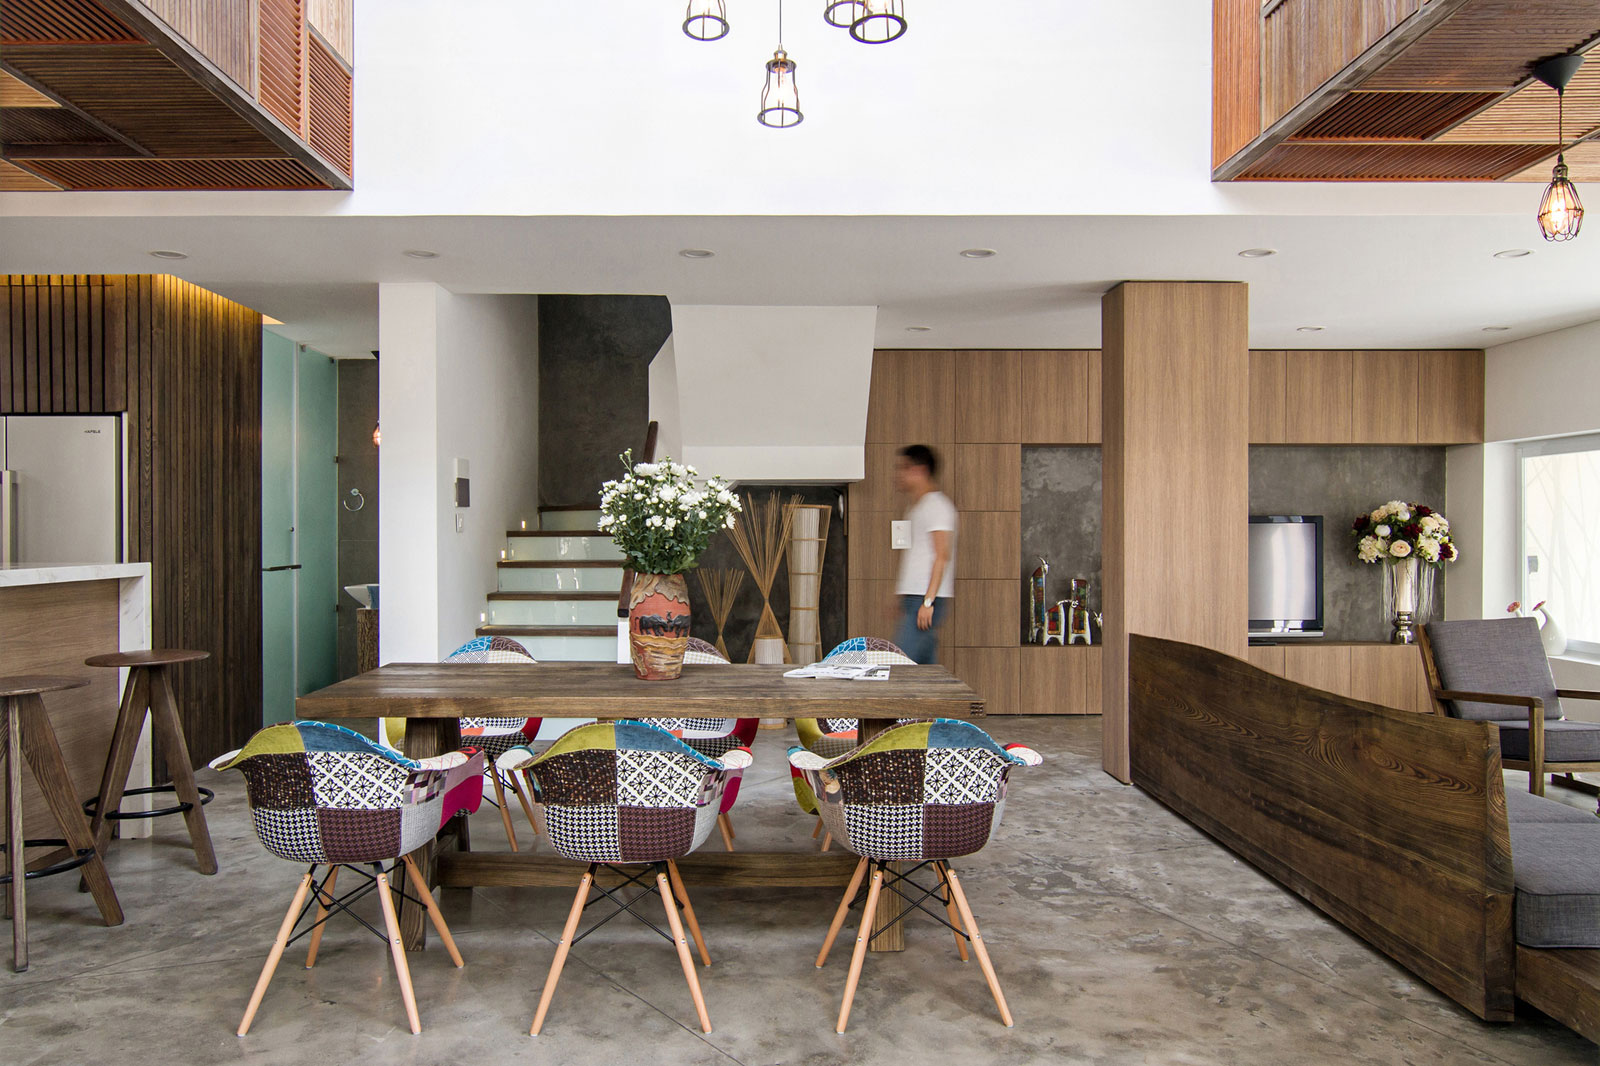 EPV Semi-Detached House Located in Ecopark Green Urban Area, Vietnam by AHL architects associates-10